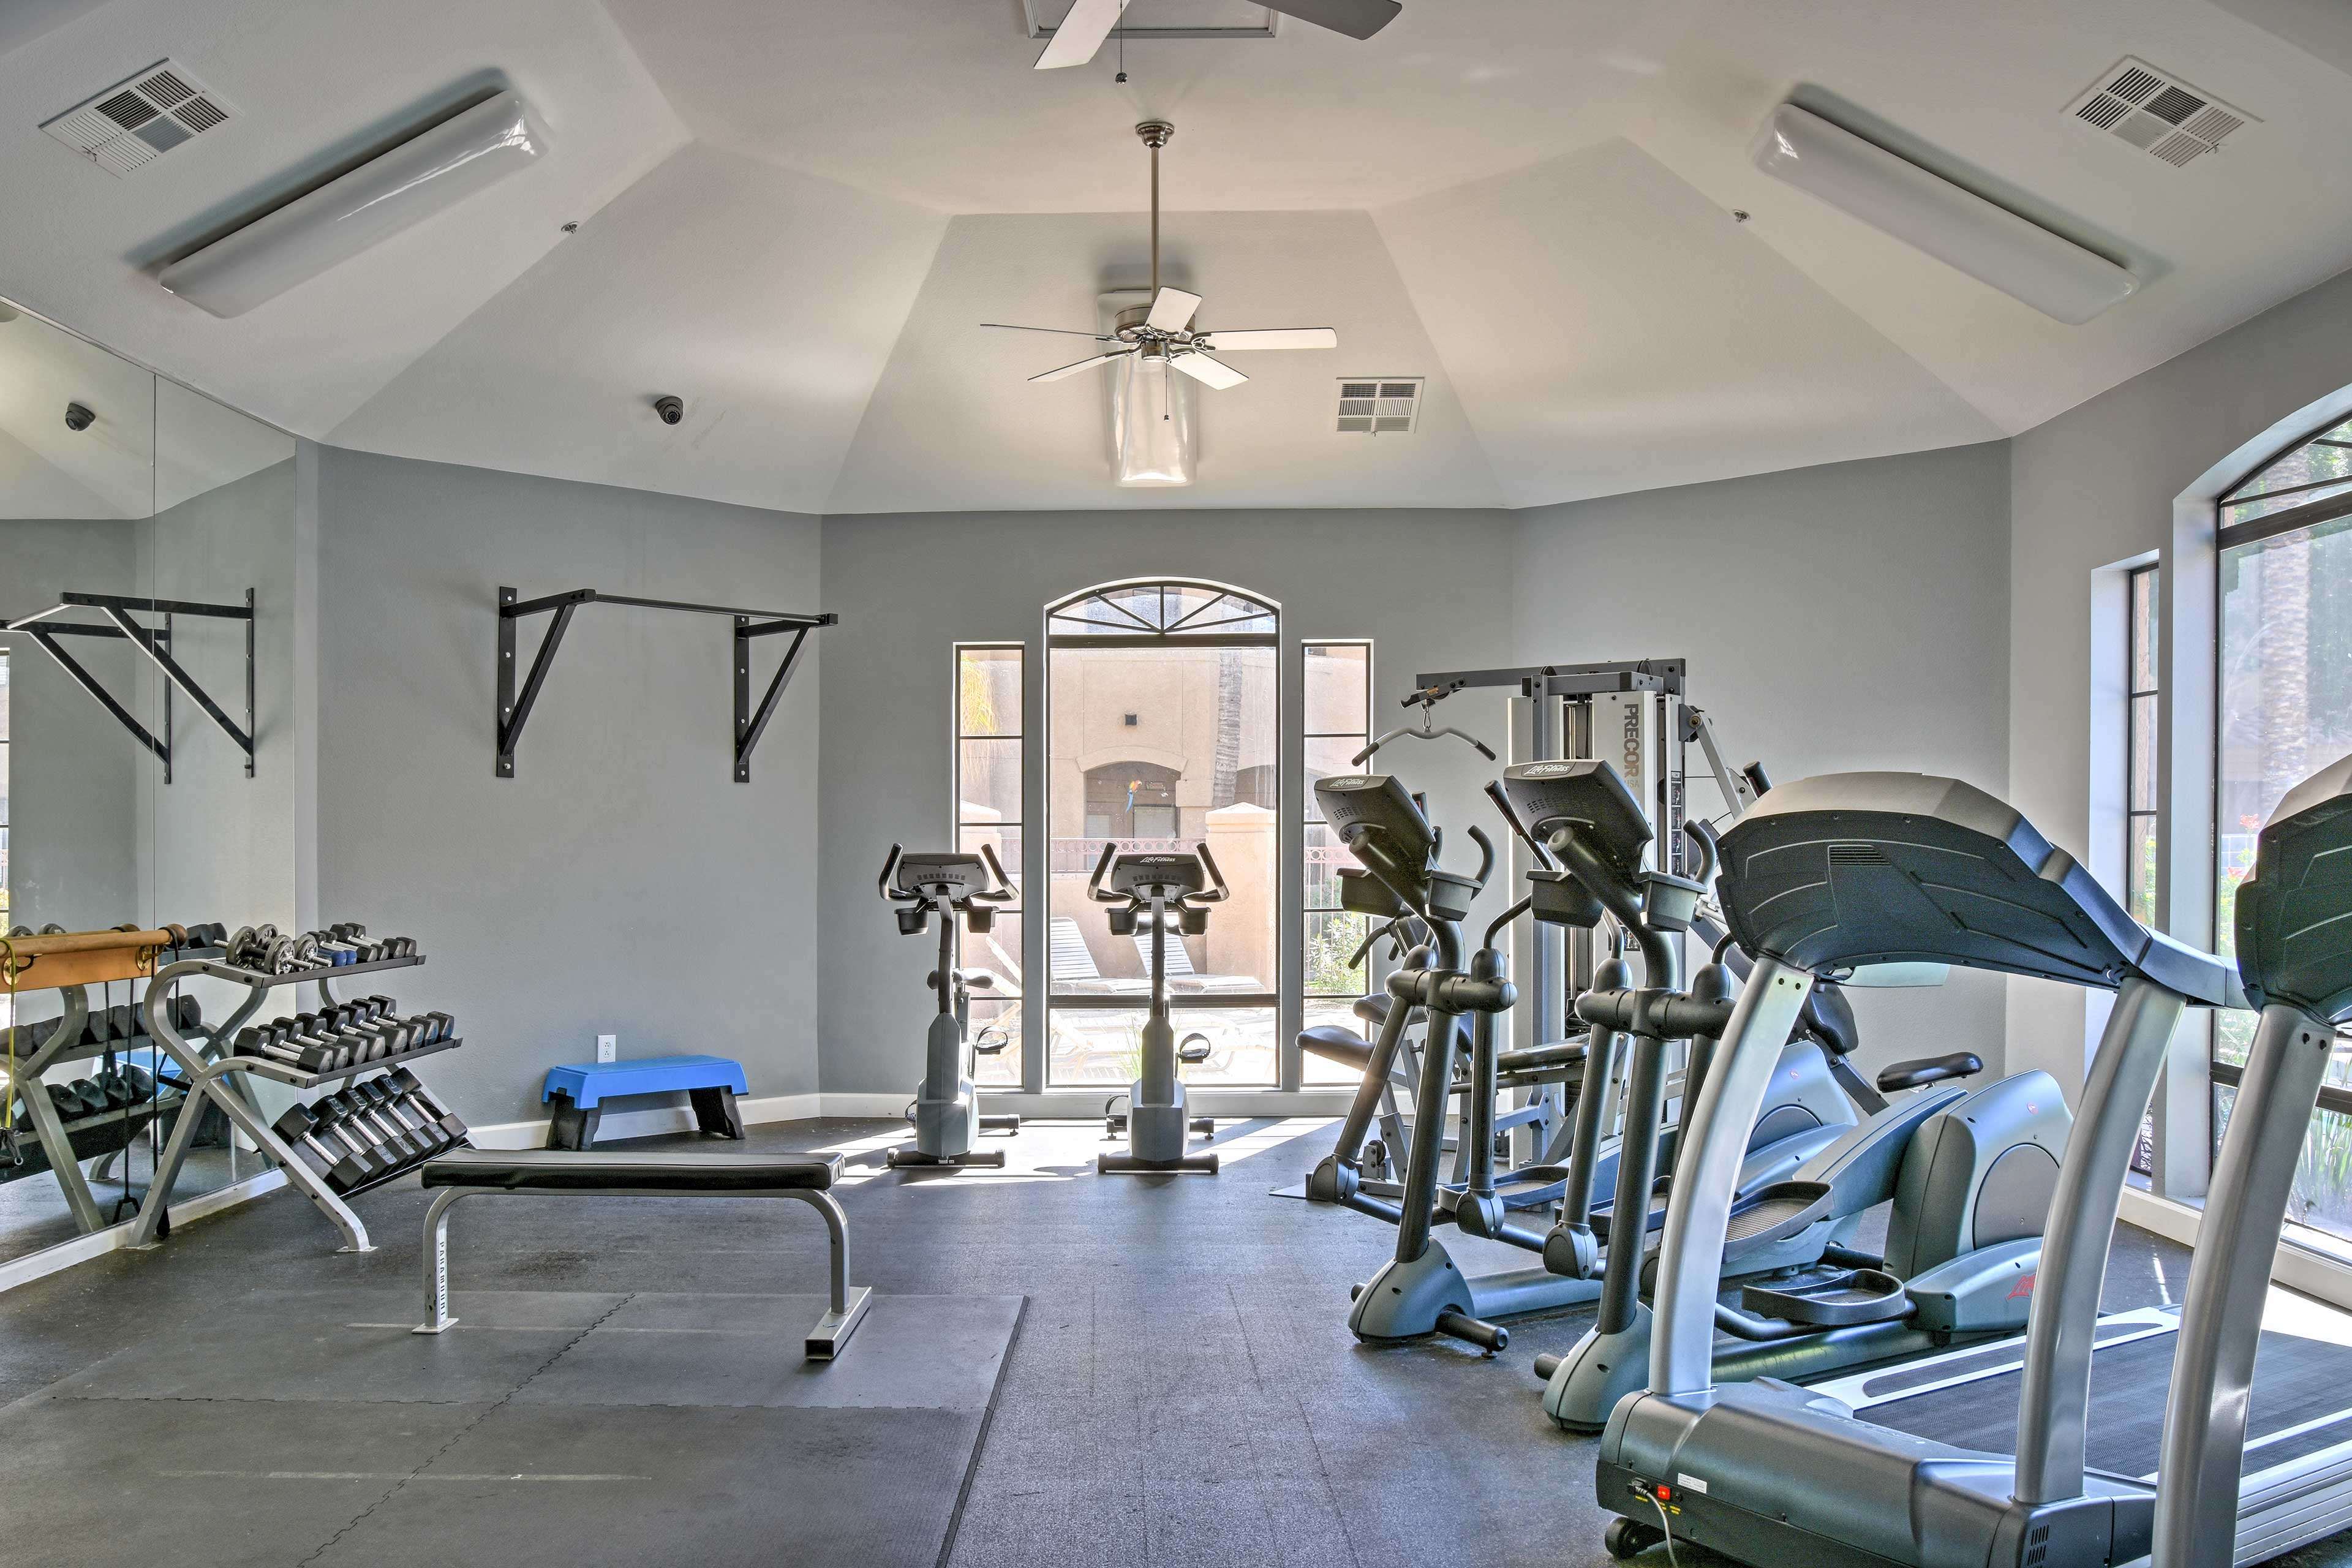 Feel free to get a workout in using the fitness facilities.